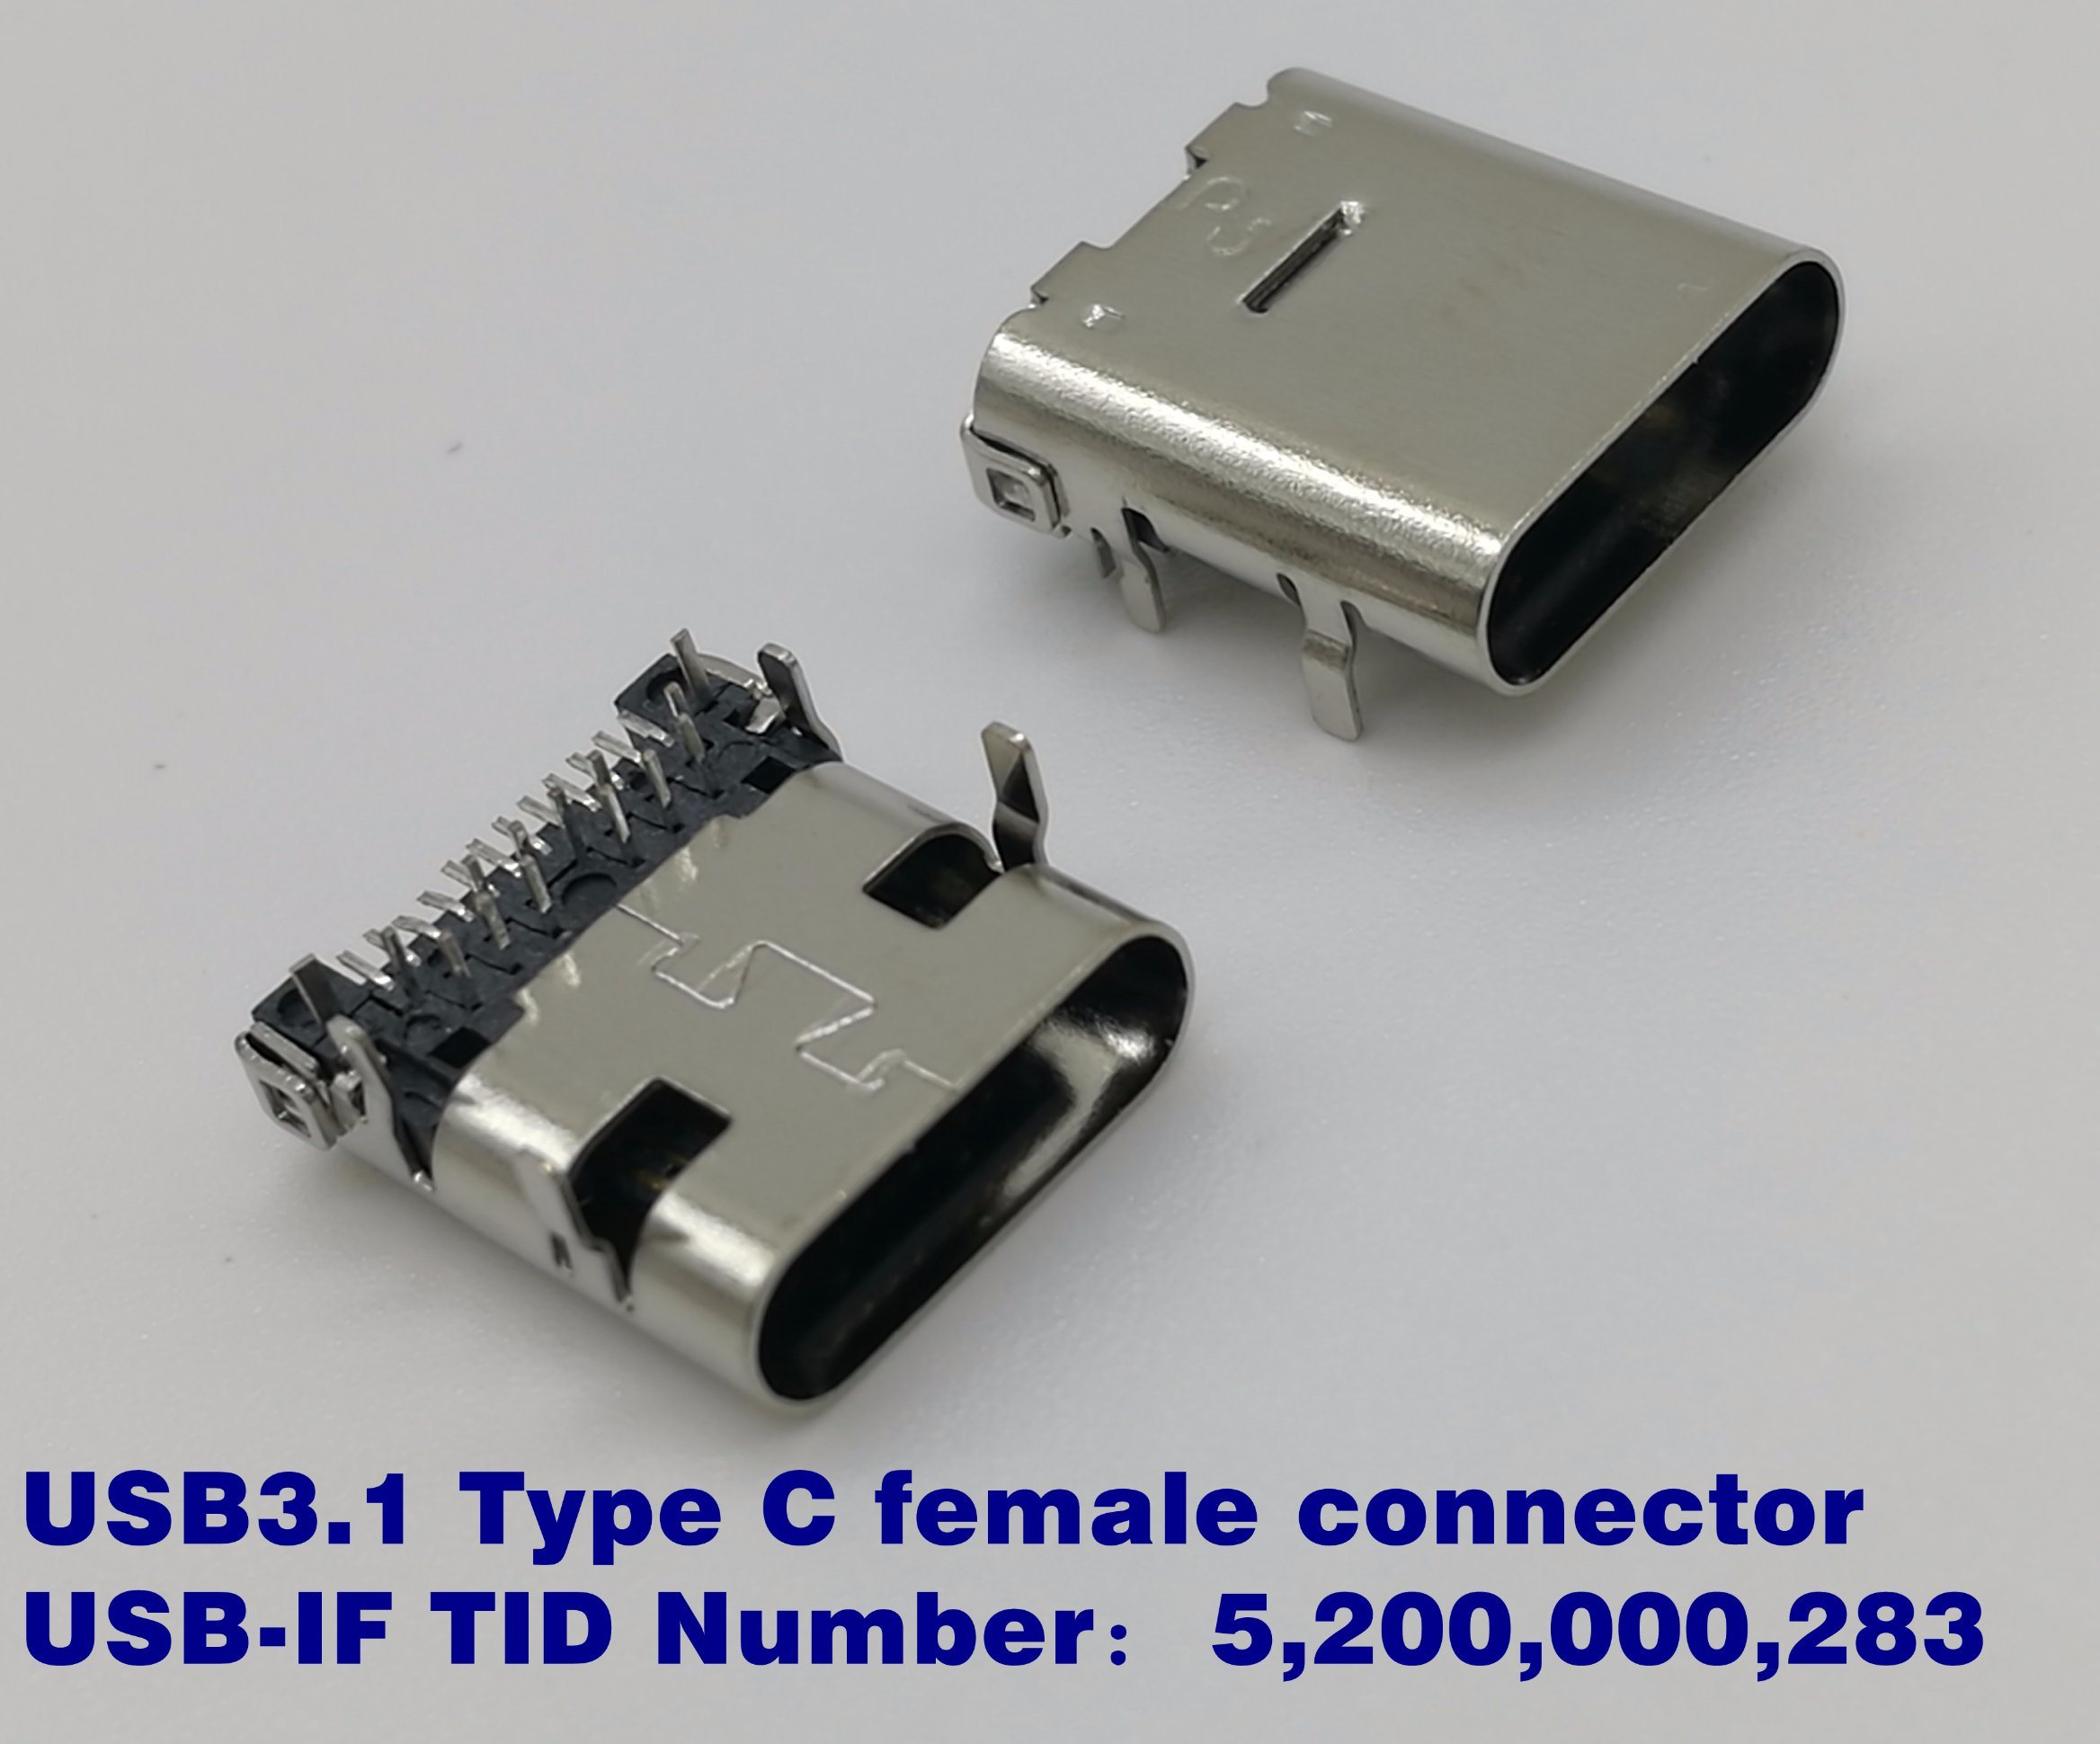 USB3.1 Type C Connector, USB-If Certified Number: 5200000283